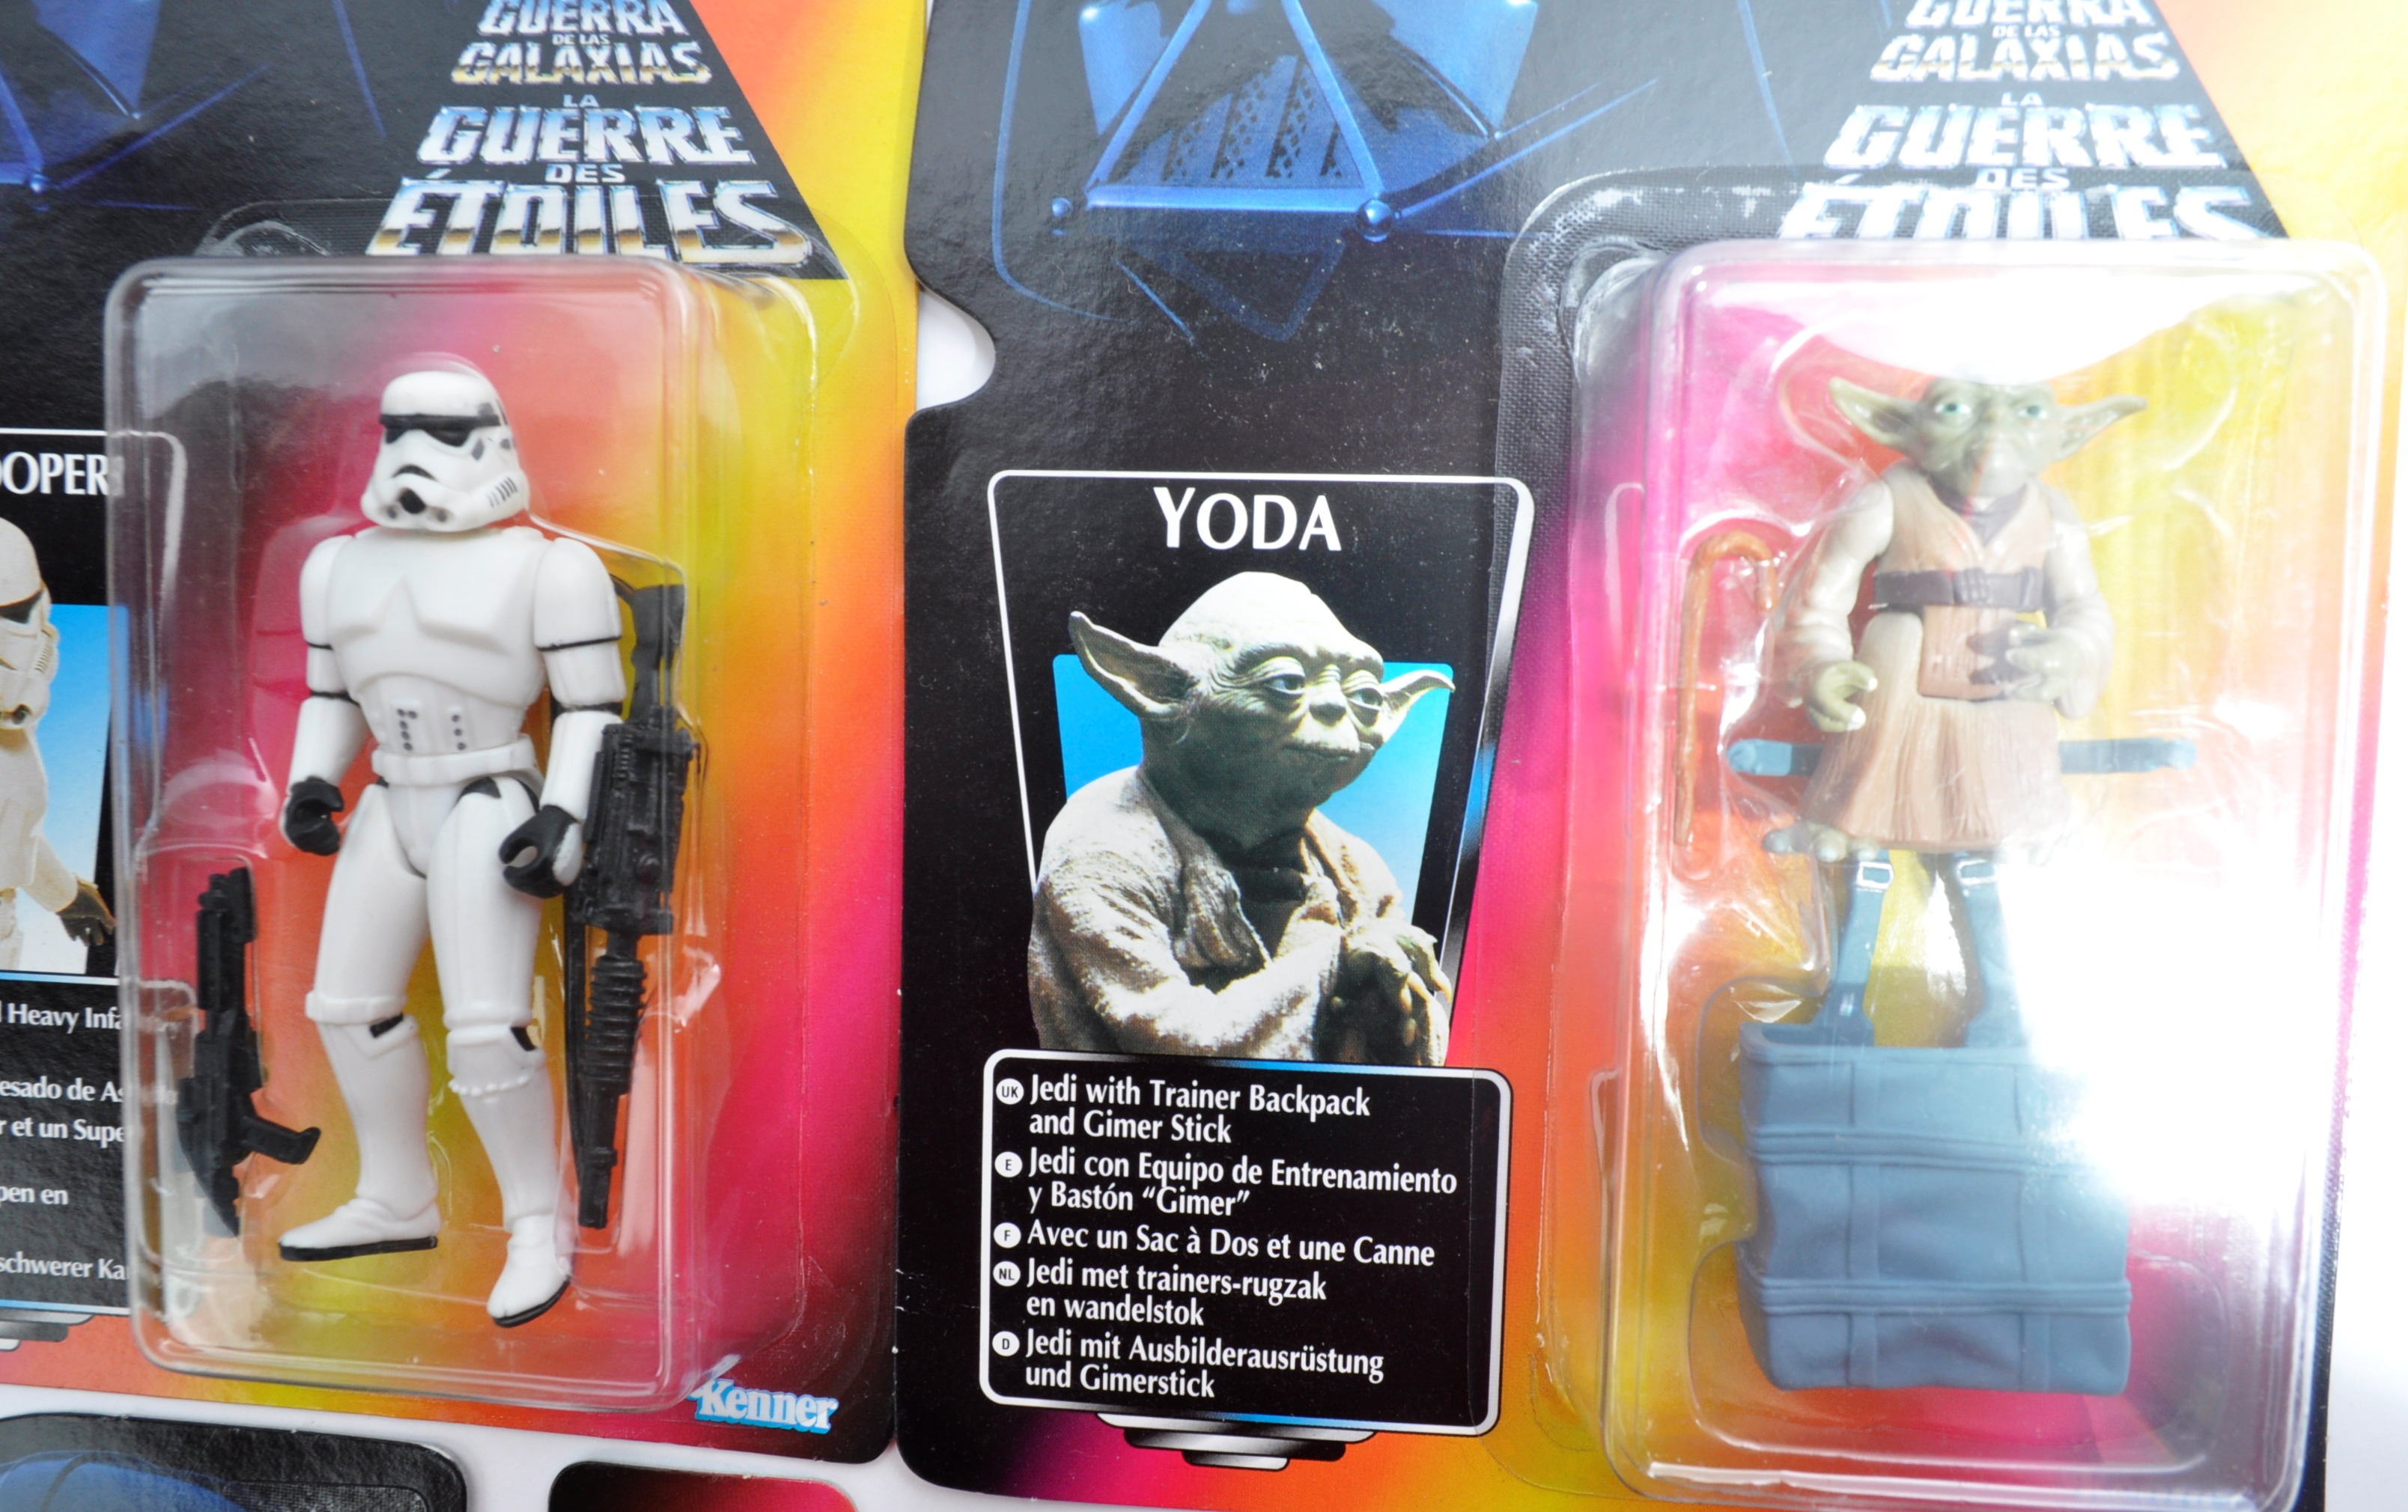 STAR WARS - COLLECTION OF KENNER CARDED ACTION FIGURES - Image 5 of 6